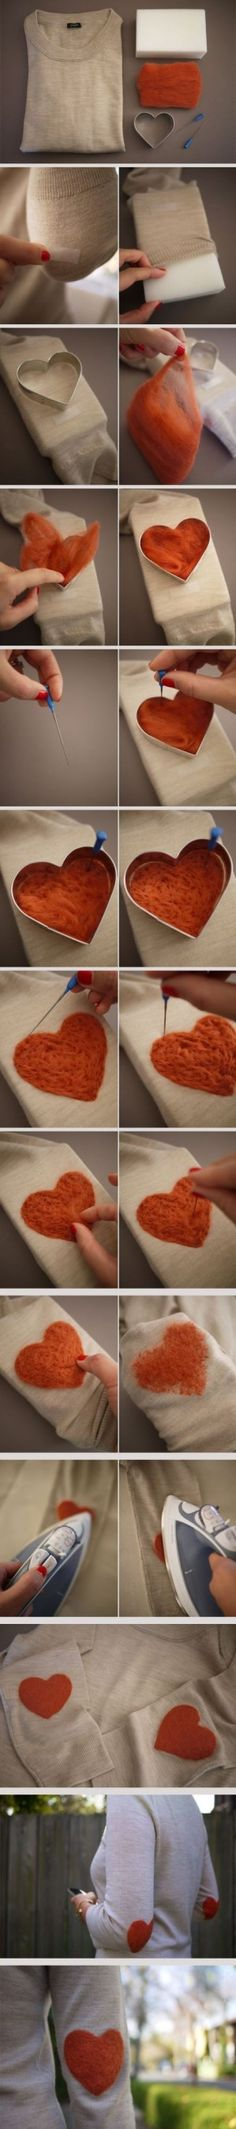 DIY heart-shaped woolen sweater